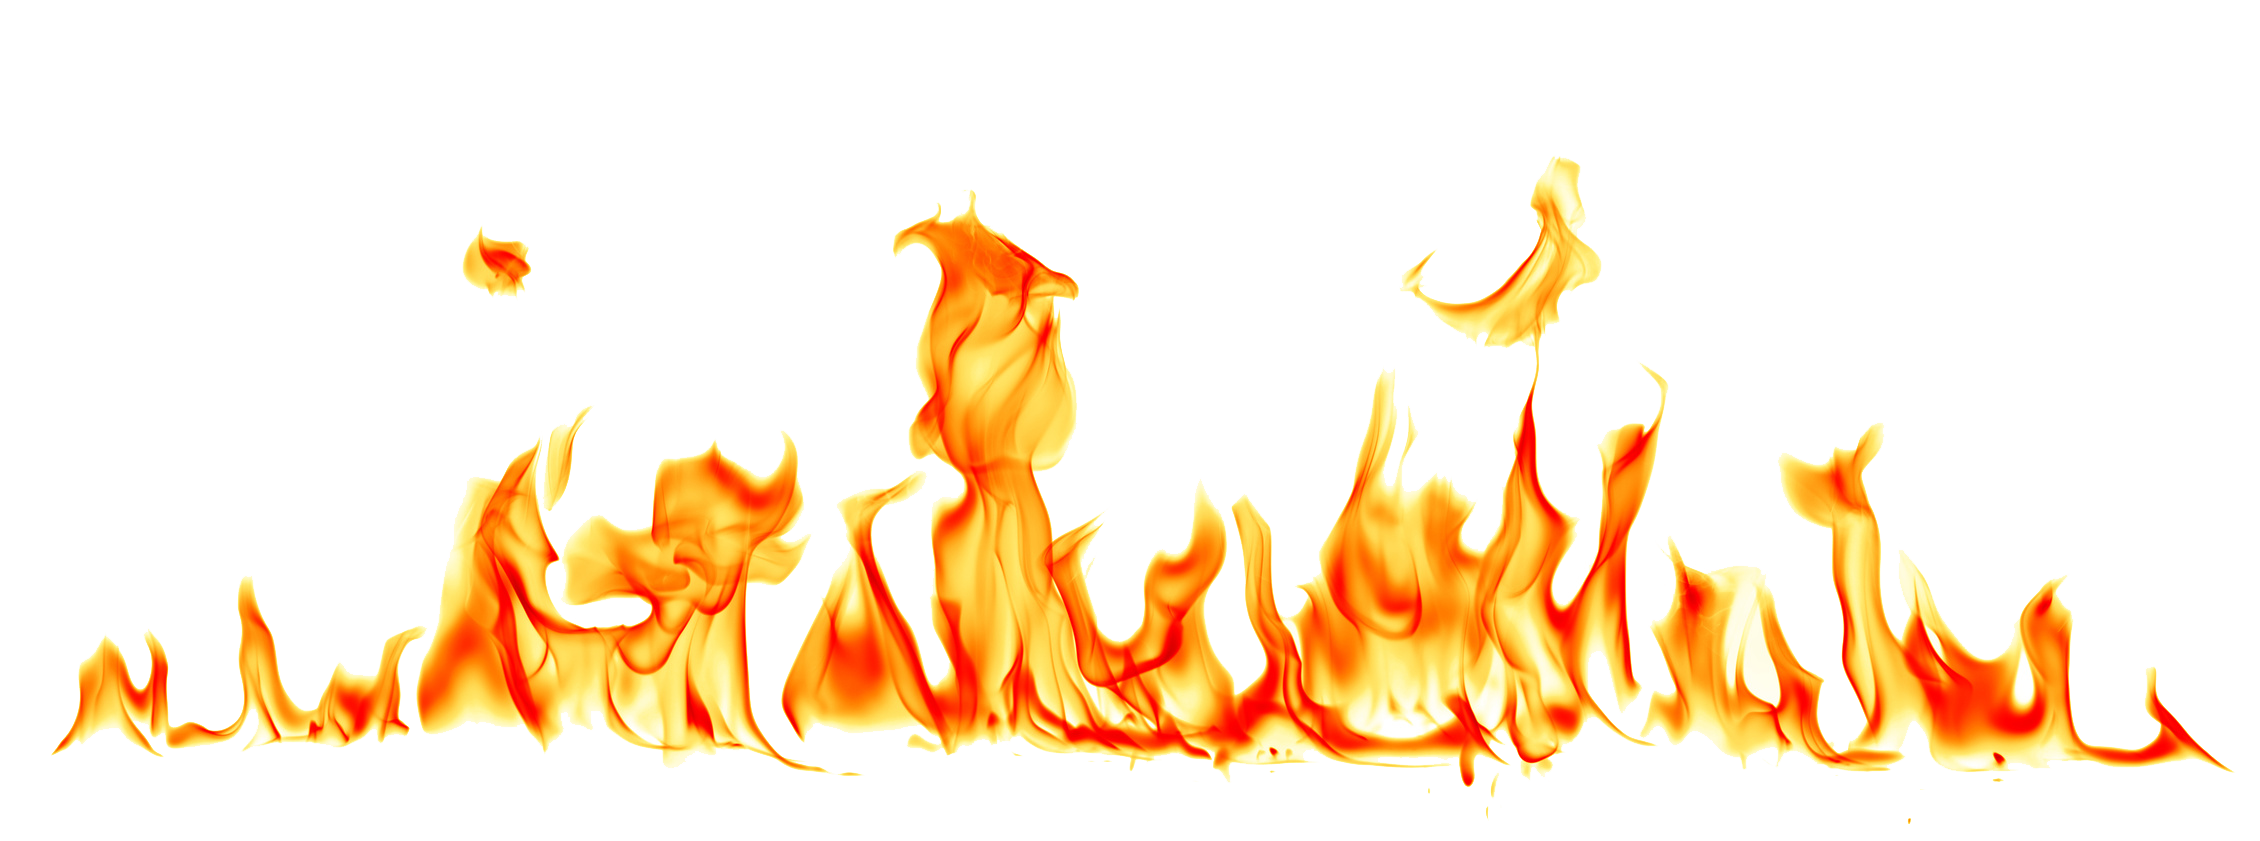 Fire Flames PNG - 9644